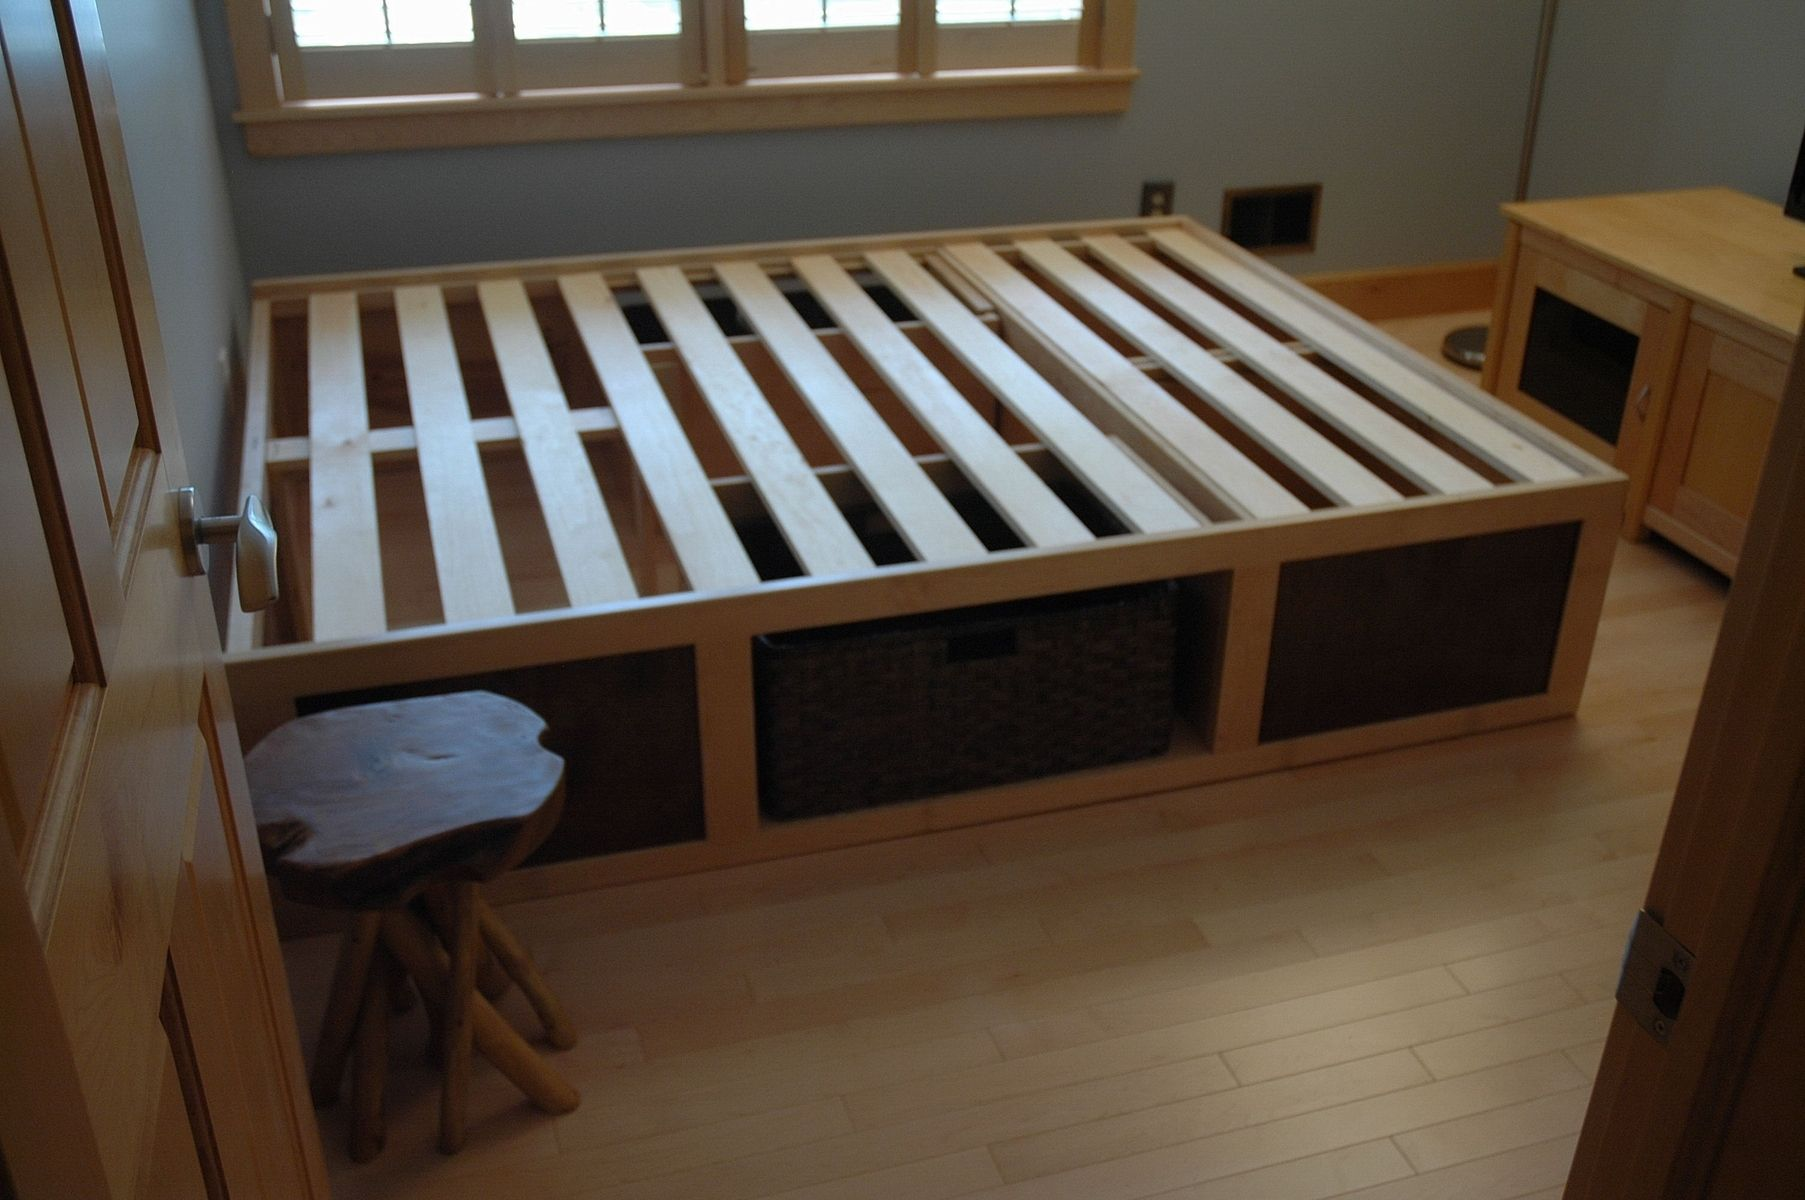 Diy Platform Bed Base 60 Quot X 80 Quot Platform Bed With Storage Baskets Diy And Crafts